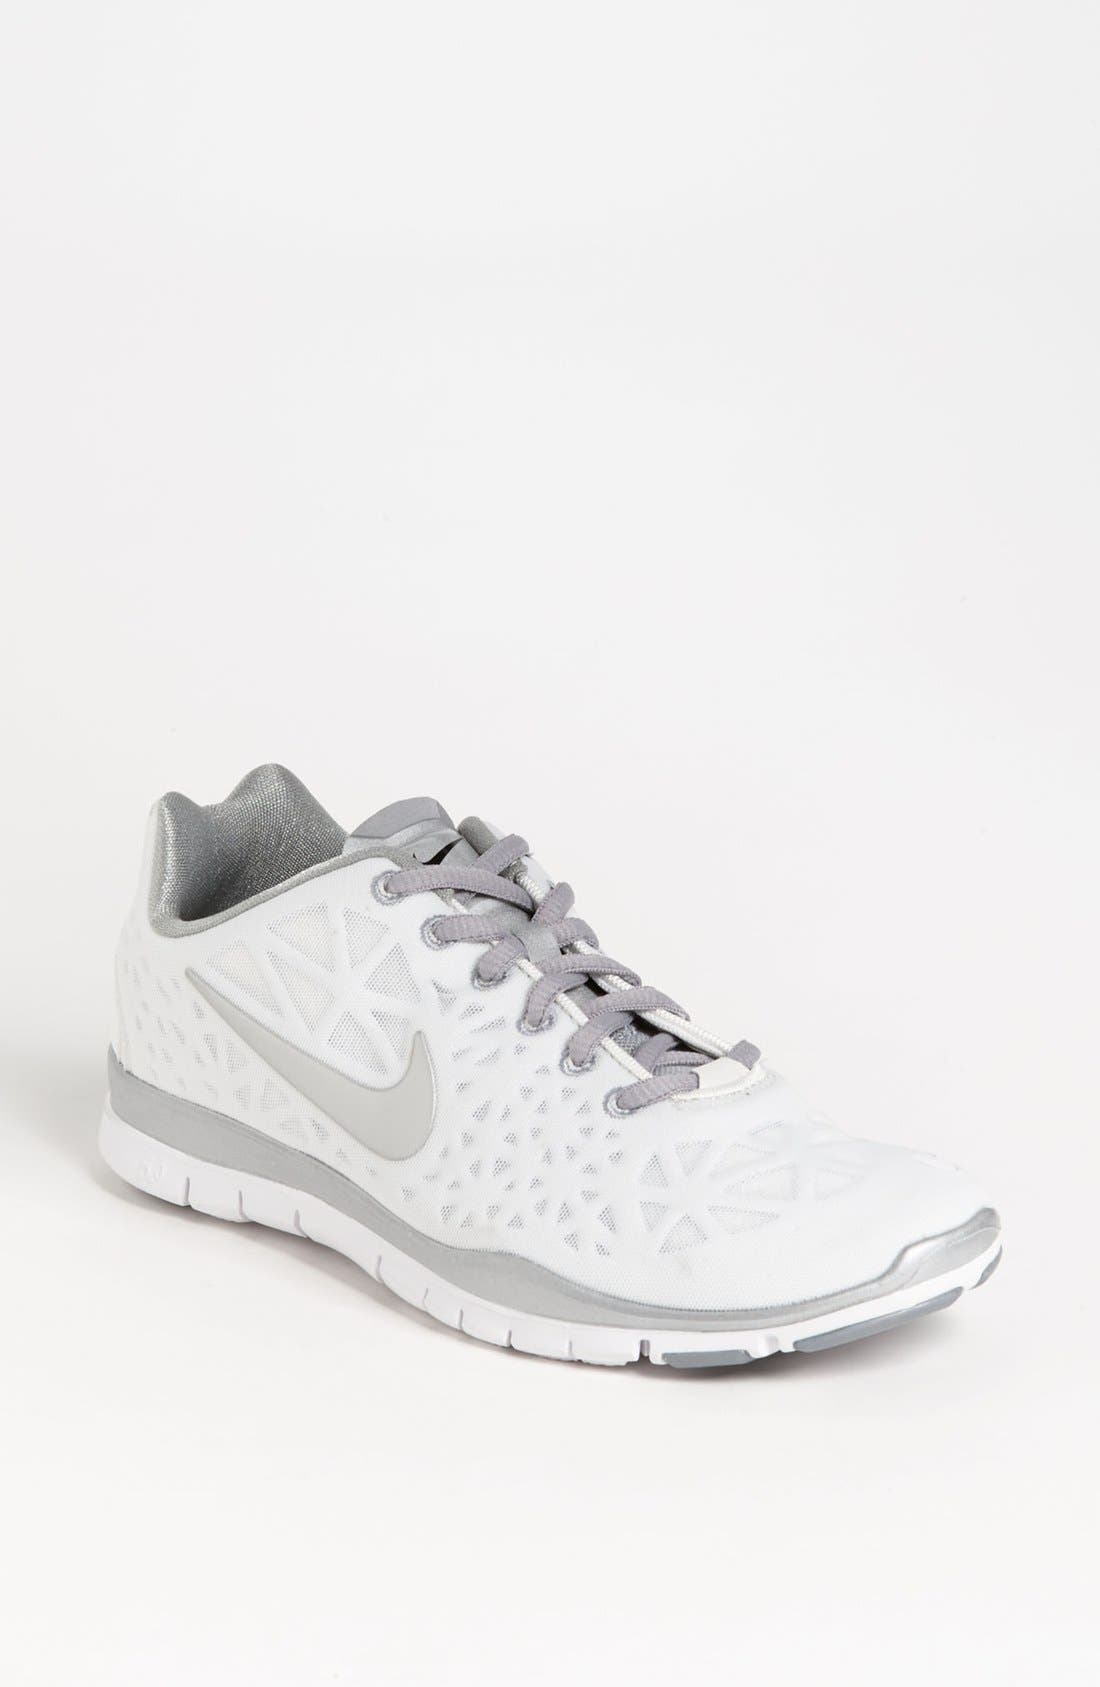 Main Image - Nike 'Free TR Fit 3' Training Shoe (Women)